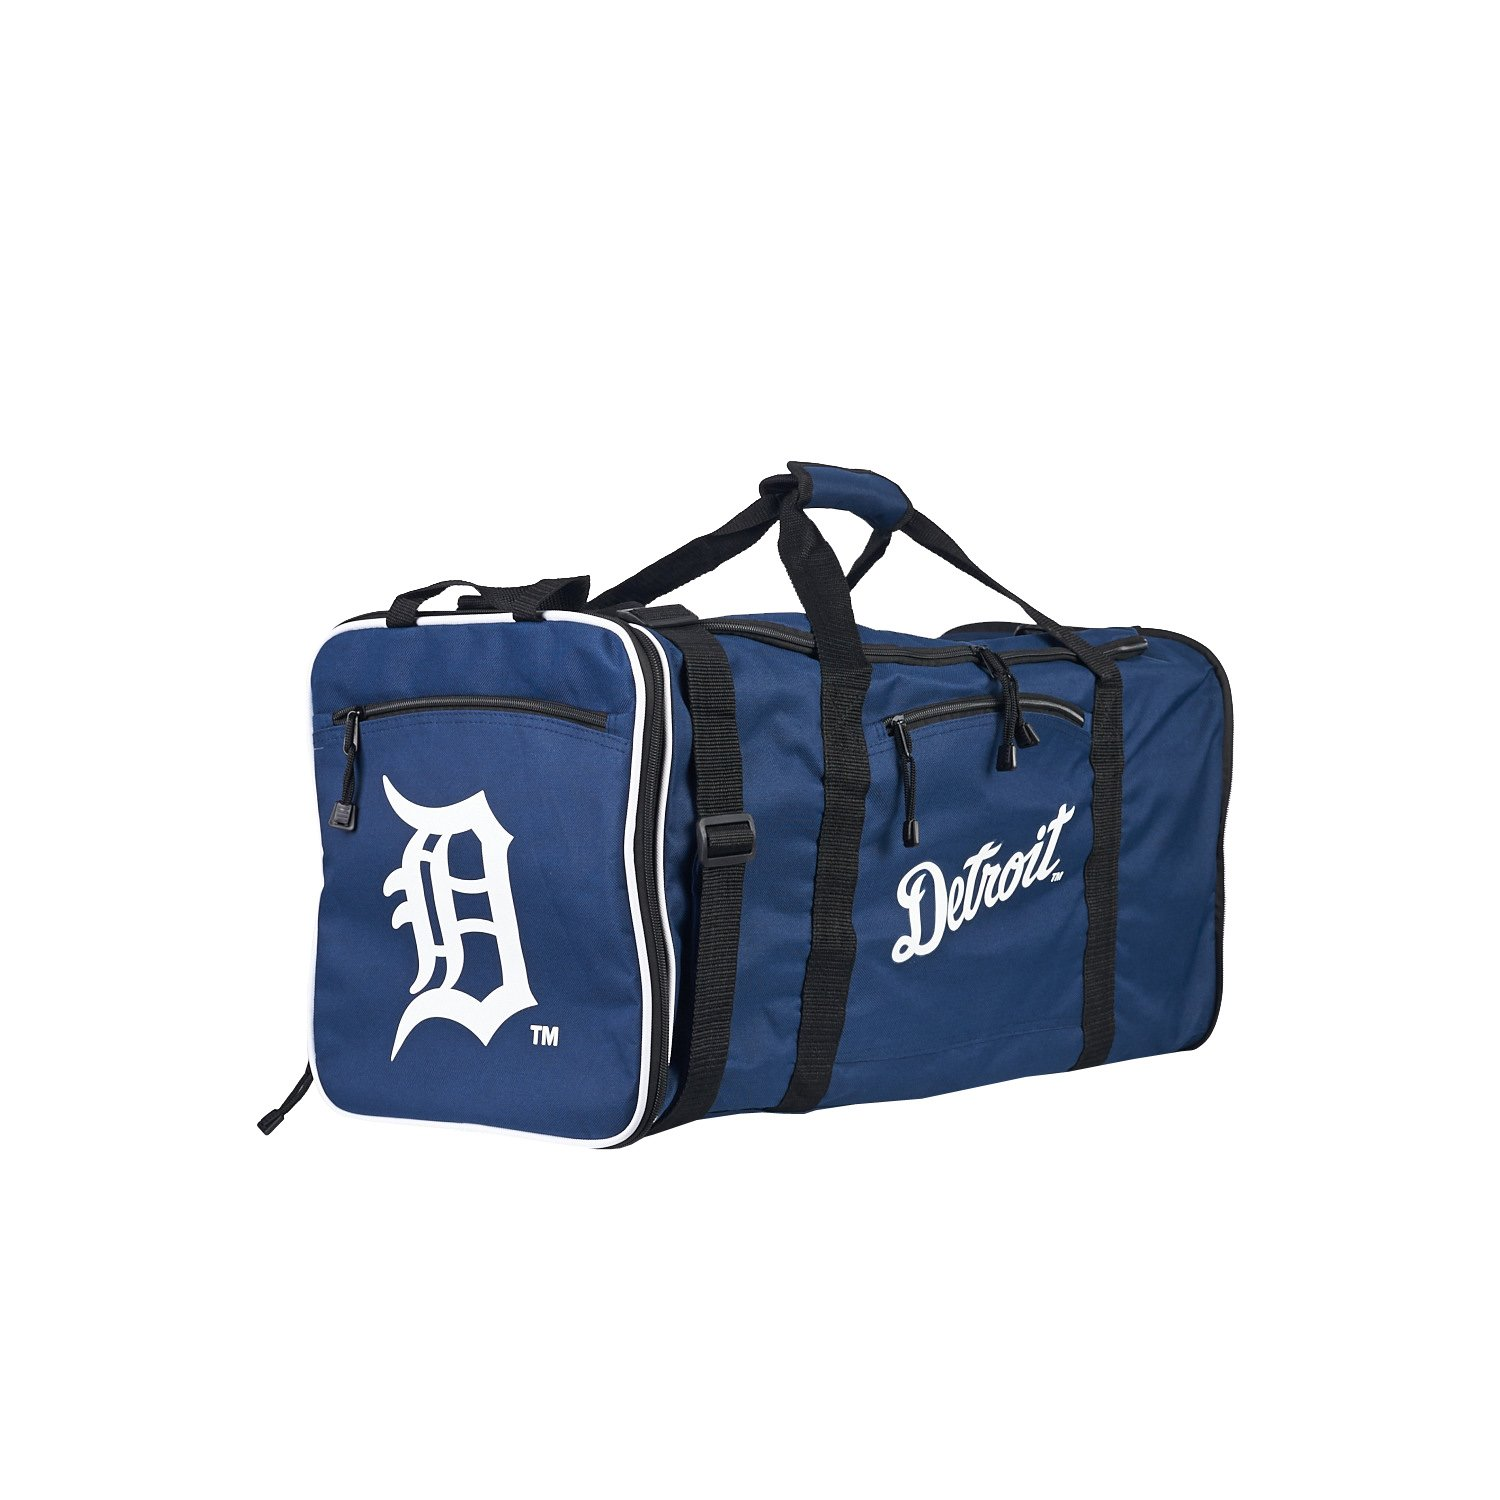 The Northwest Company Officially Licensed MLB Detroit Tigers Steal Duffel Bag, 28'' x 11'' x 12''